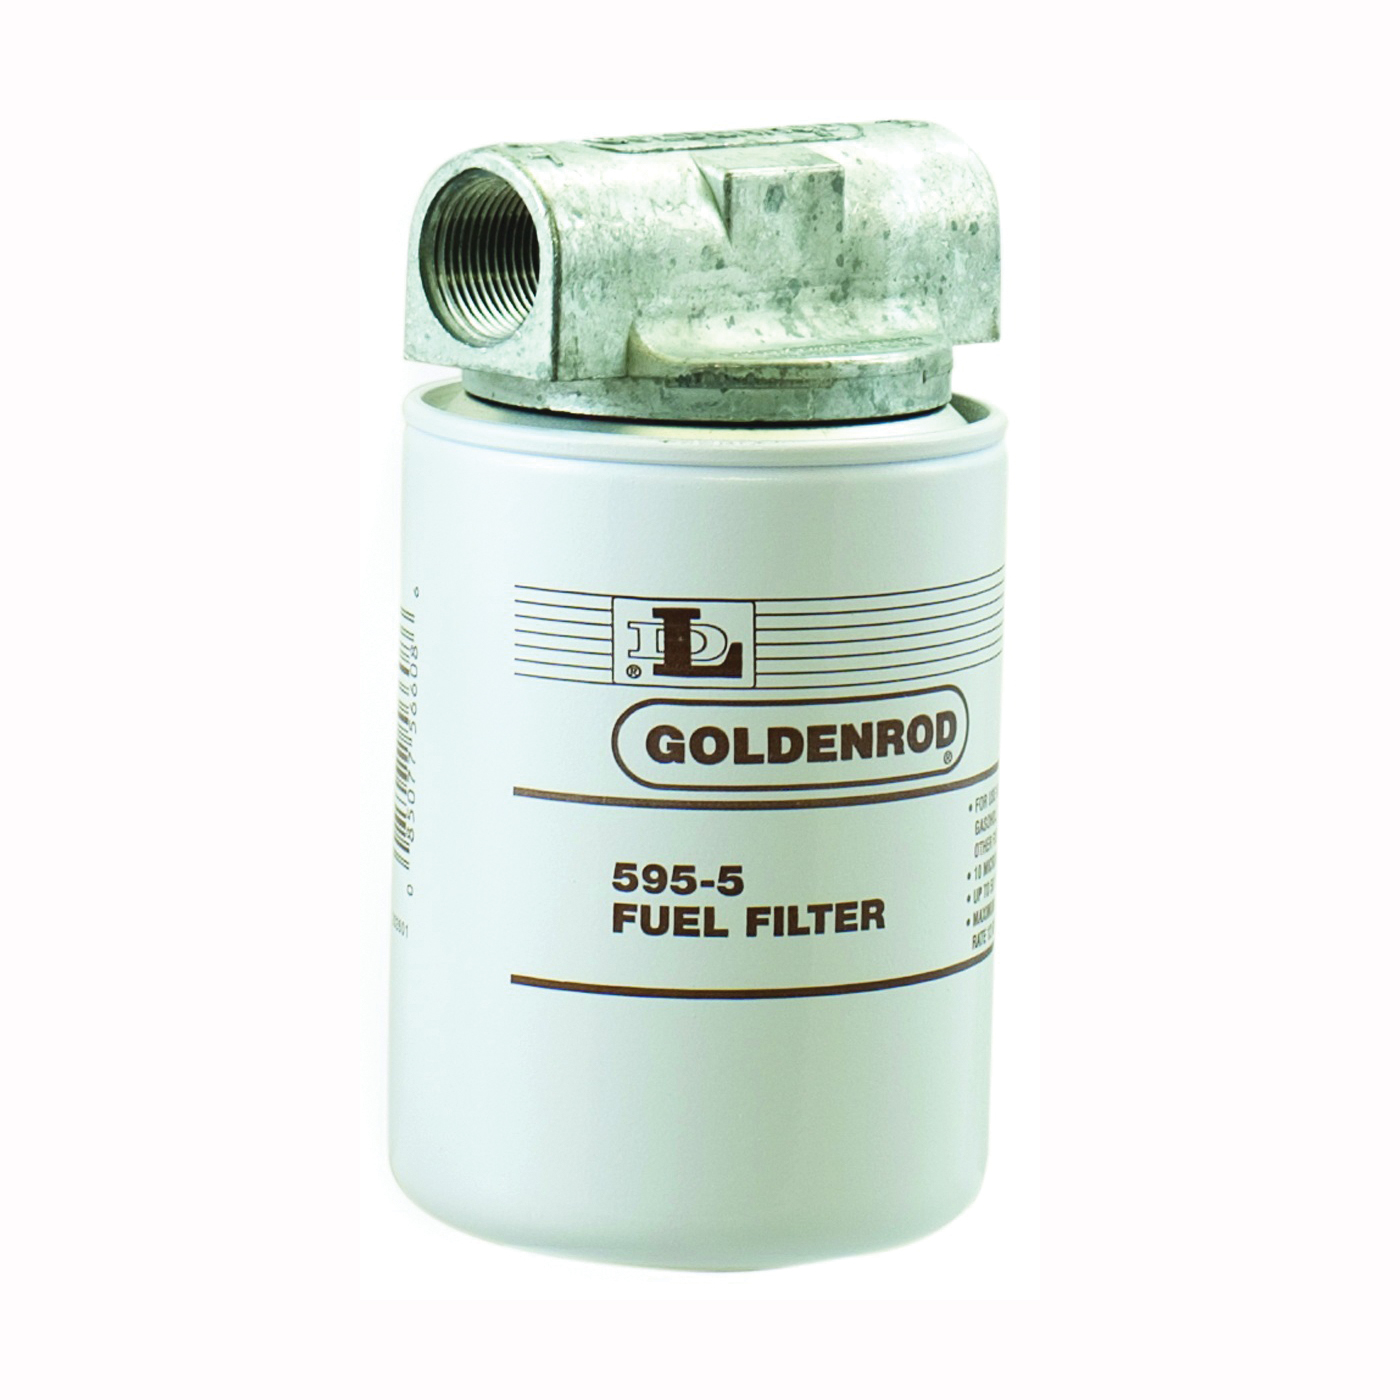 Picture of DL Goldenrod 595 Fuel Filter, 1 in Connection, NPT, 25 gpm